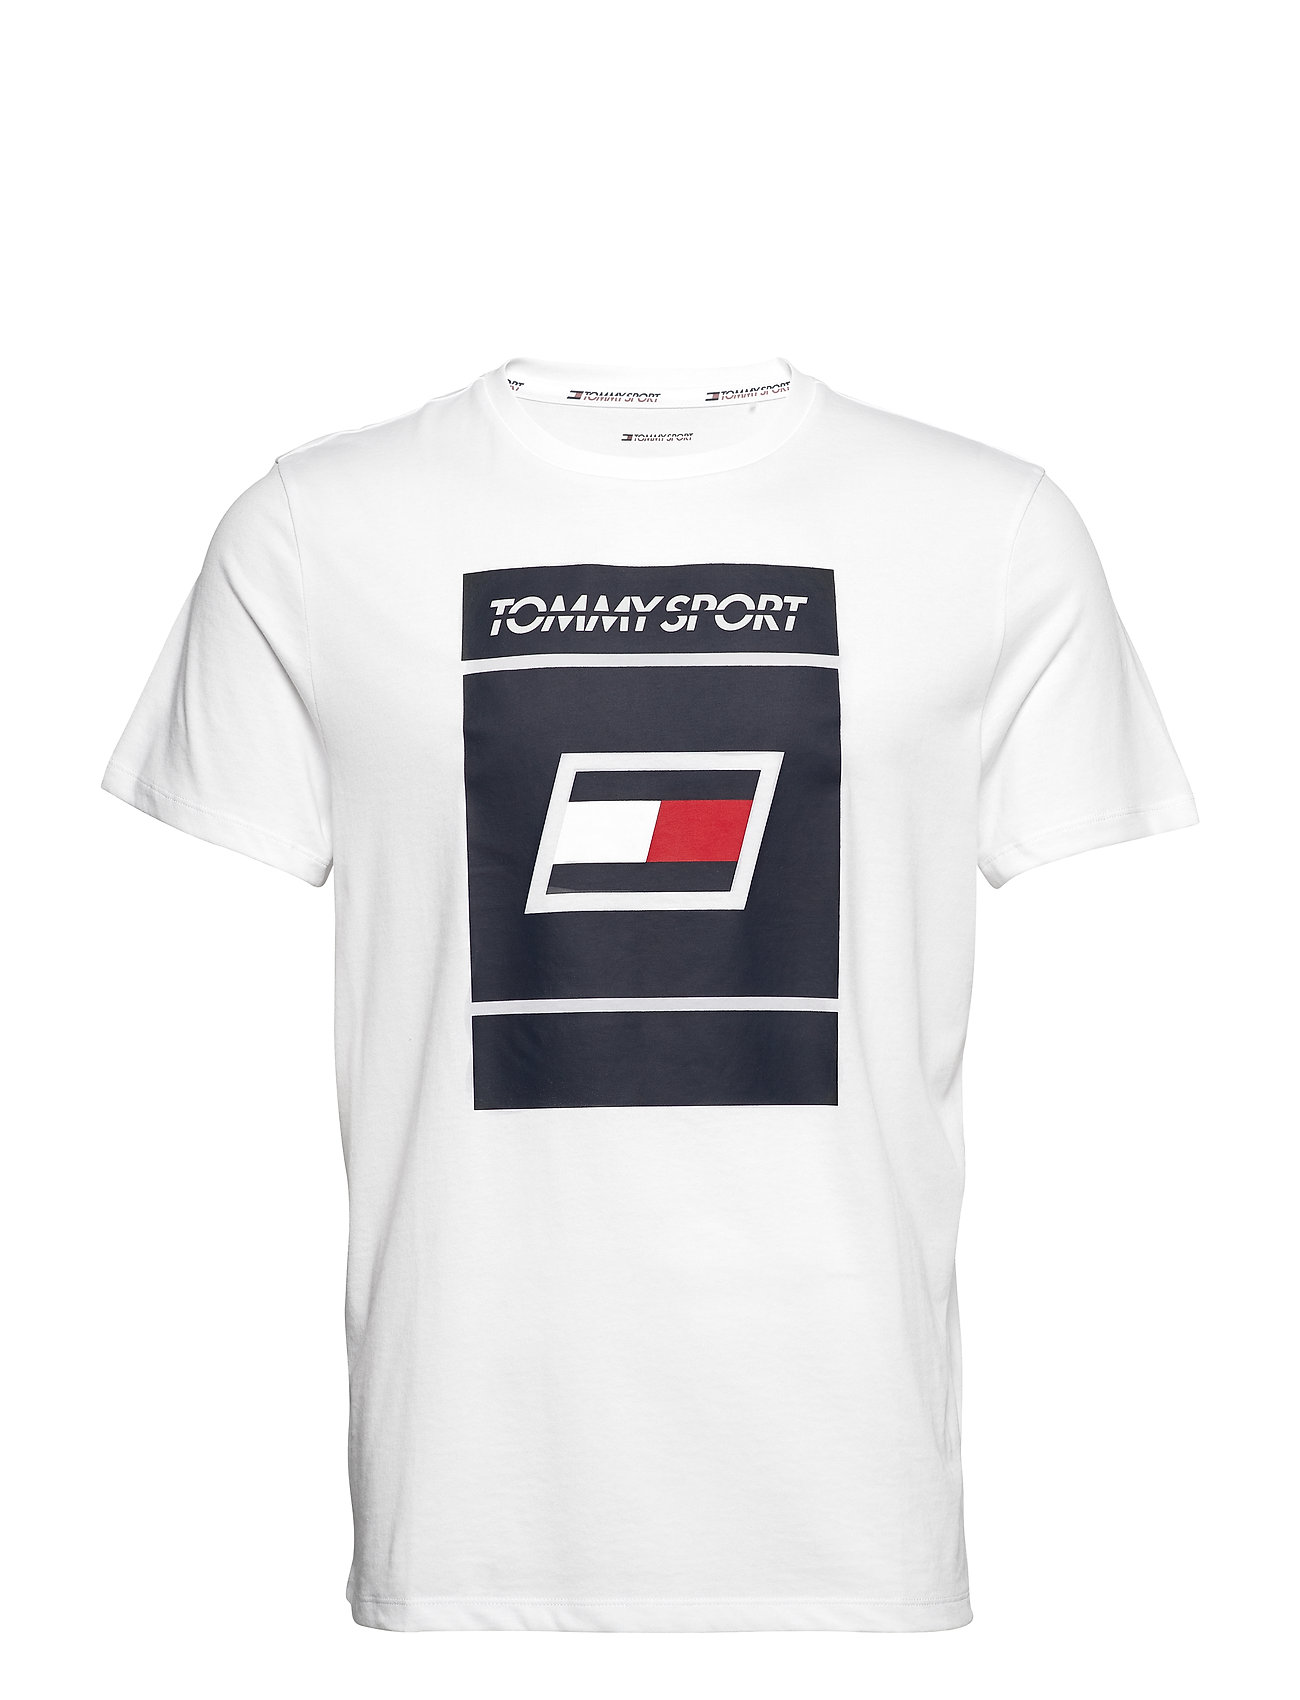 Tommy Sport GRAPHIC TEE 2 - PVH WHITE